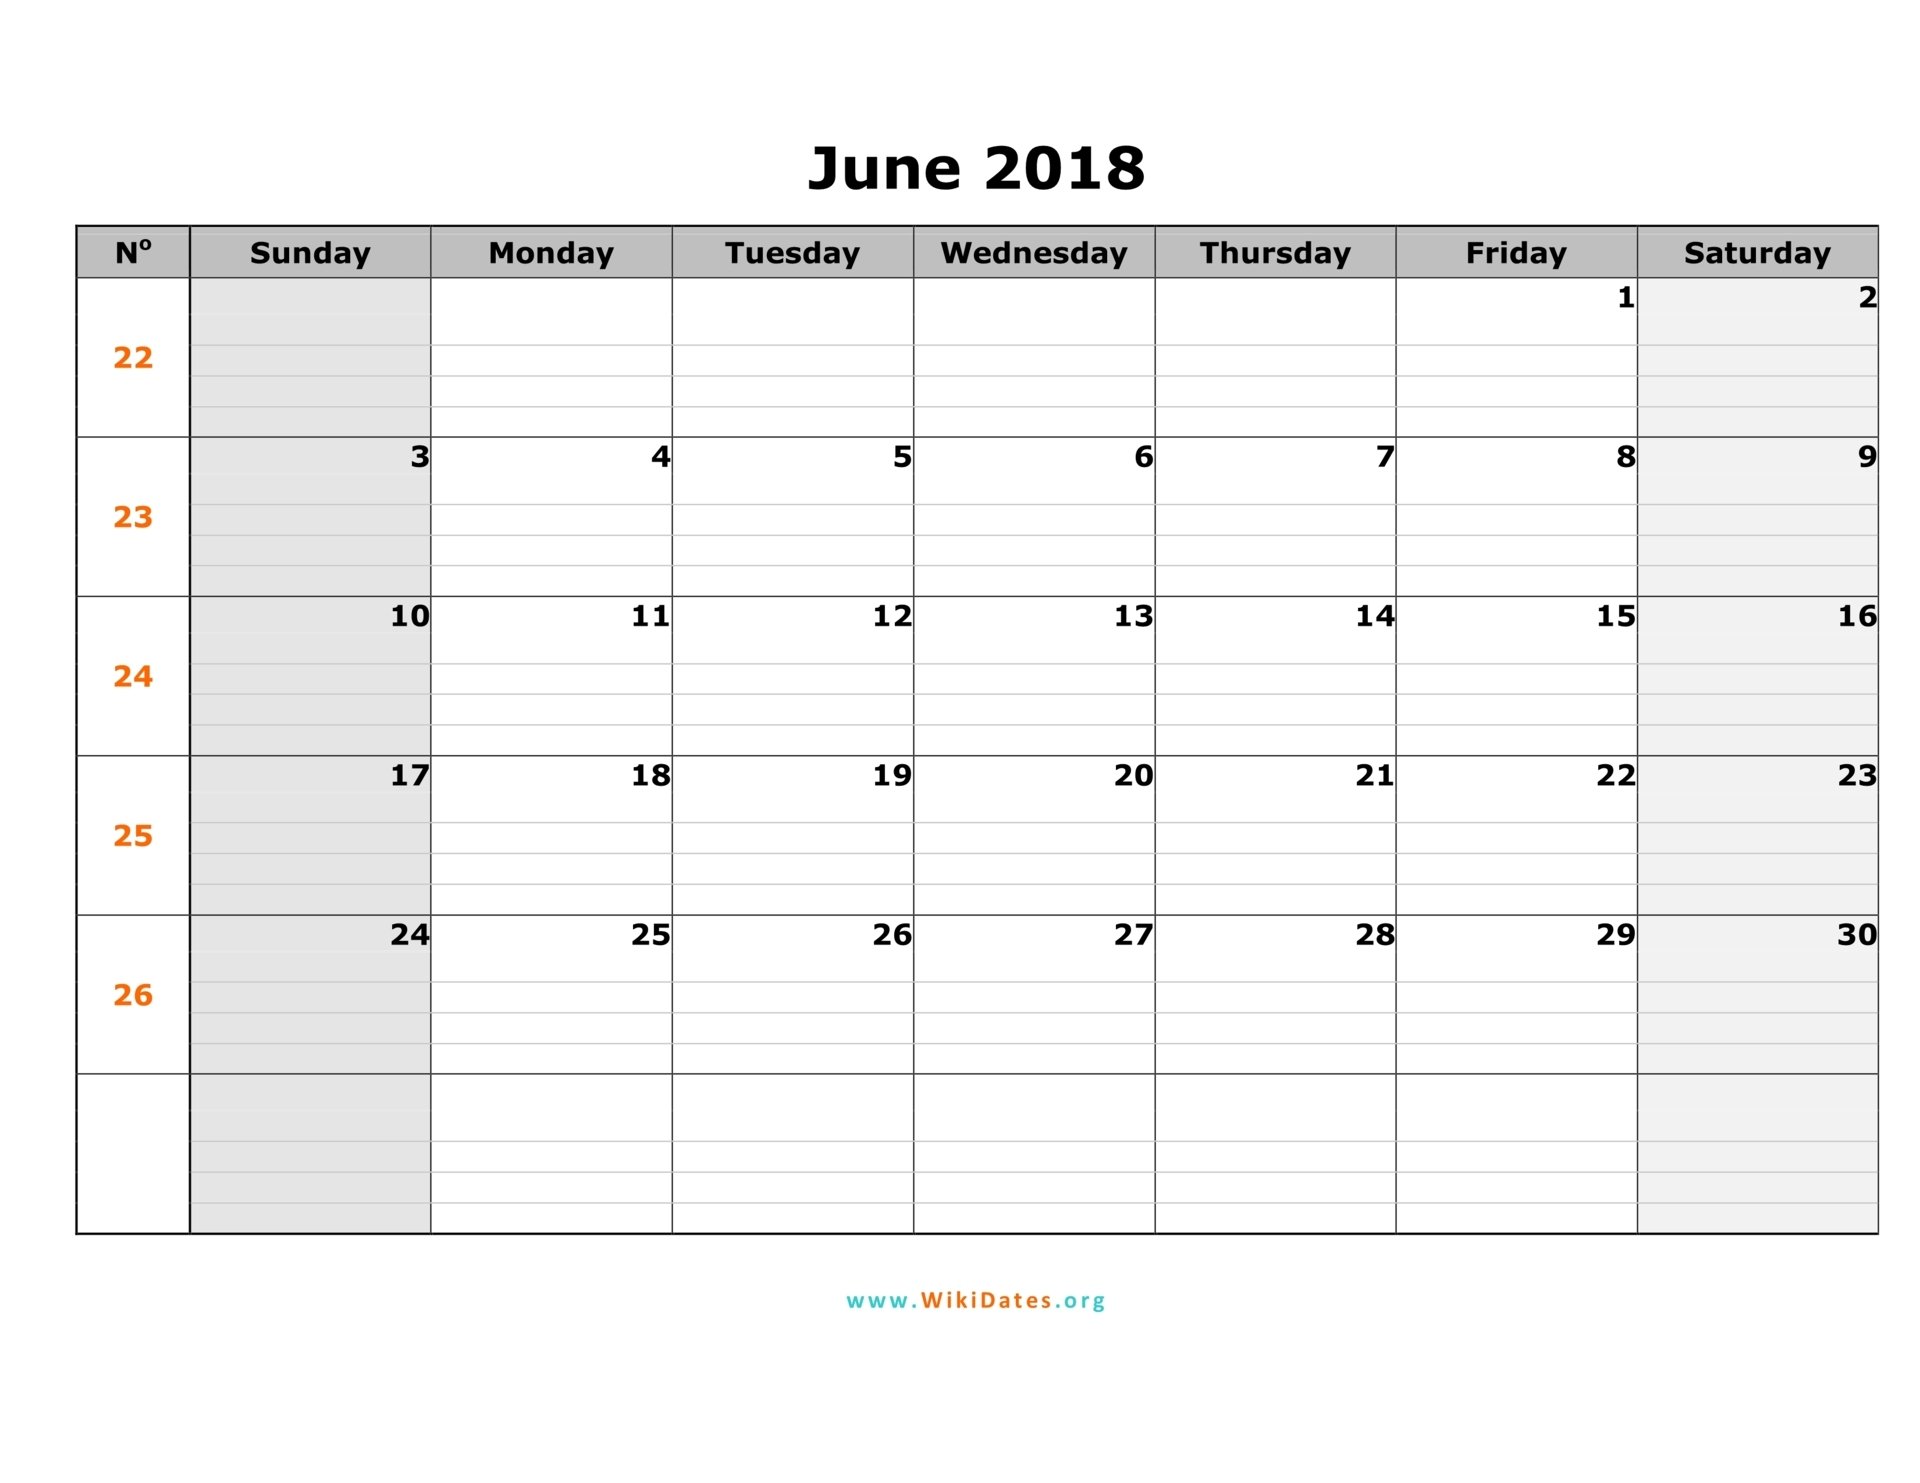 June 2018 Tumblr Calendar with Notes